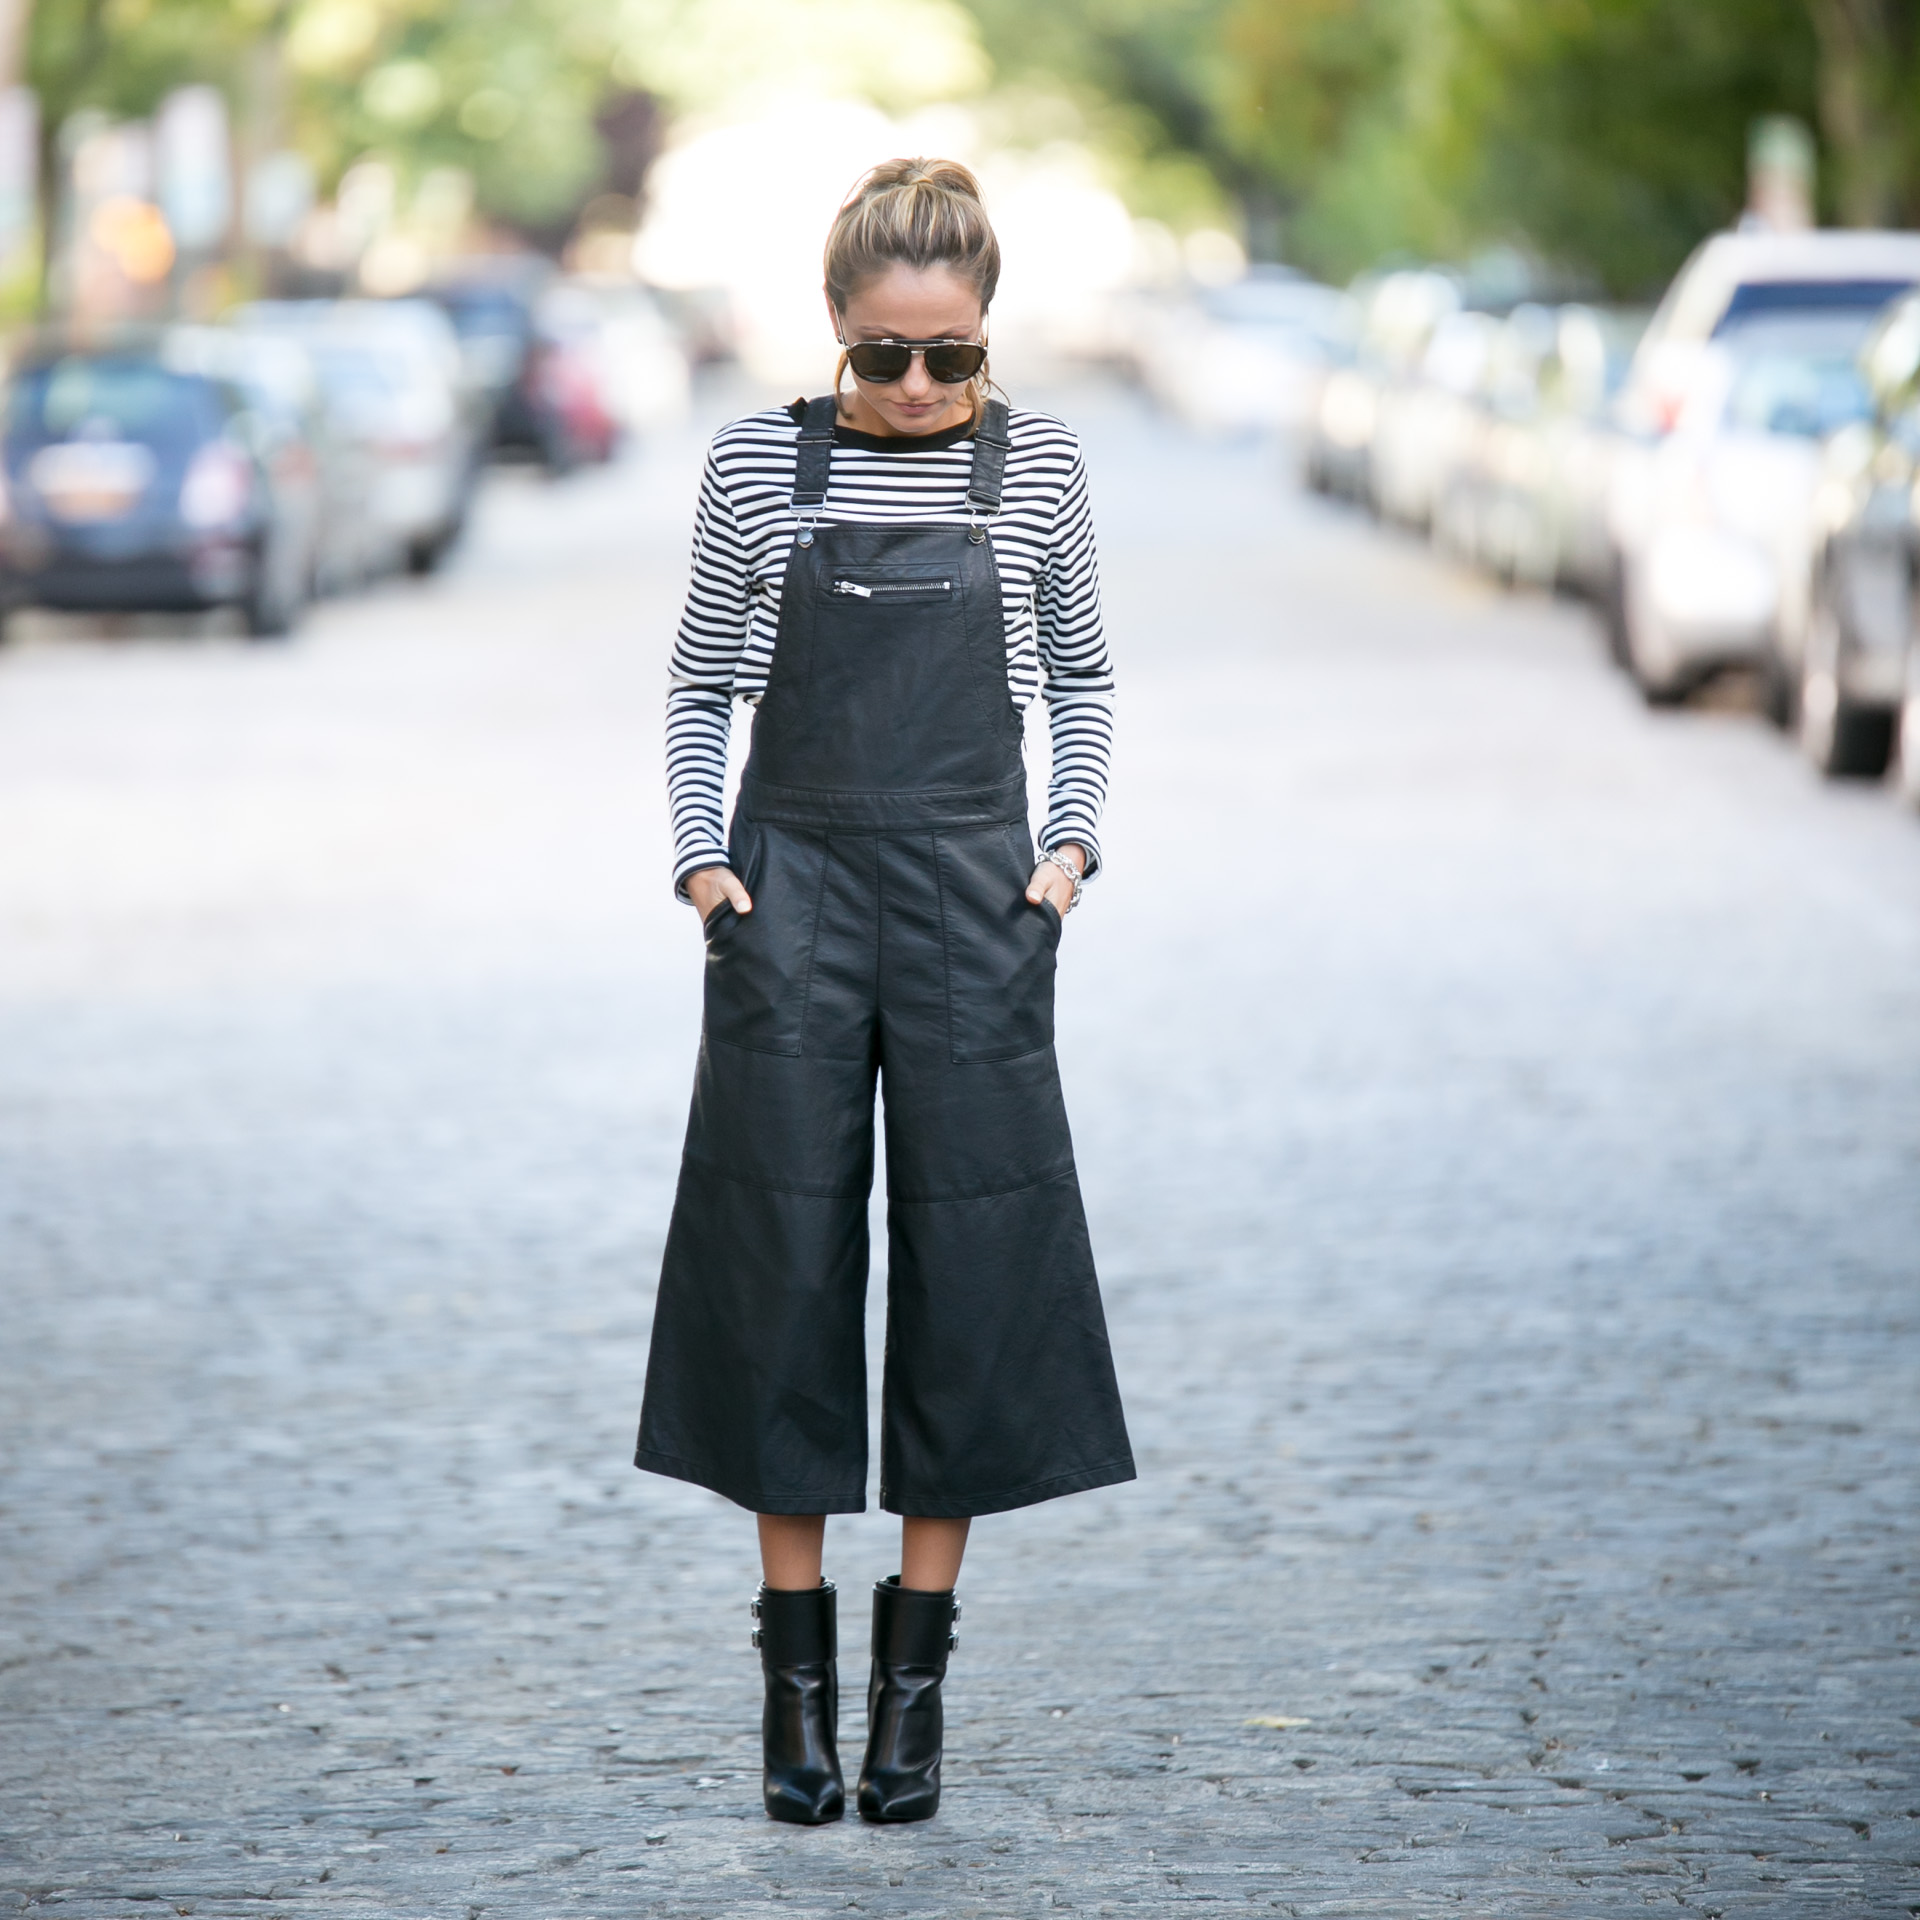 street style by north of manhattan in leather overall jumpsuit and striped top from TopShop